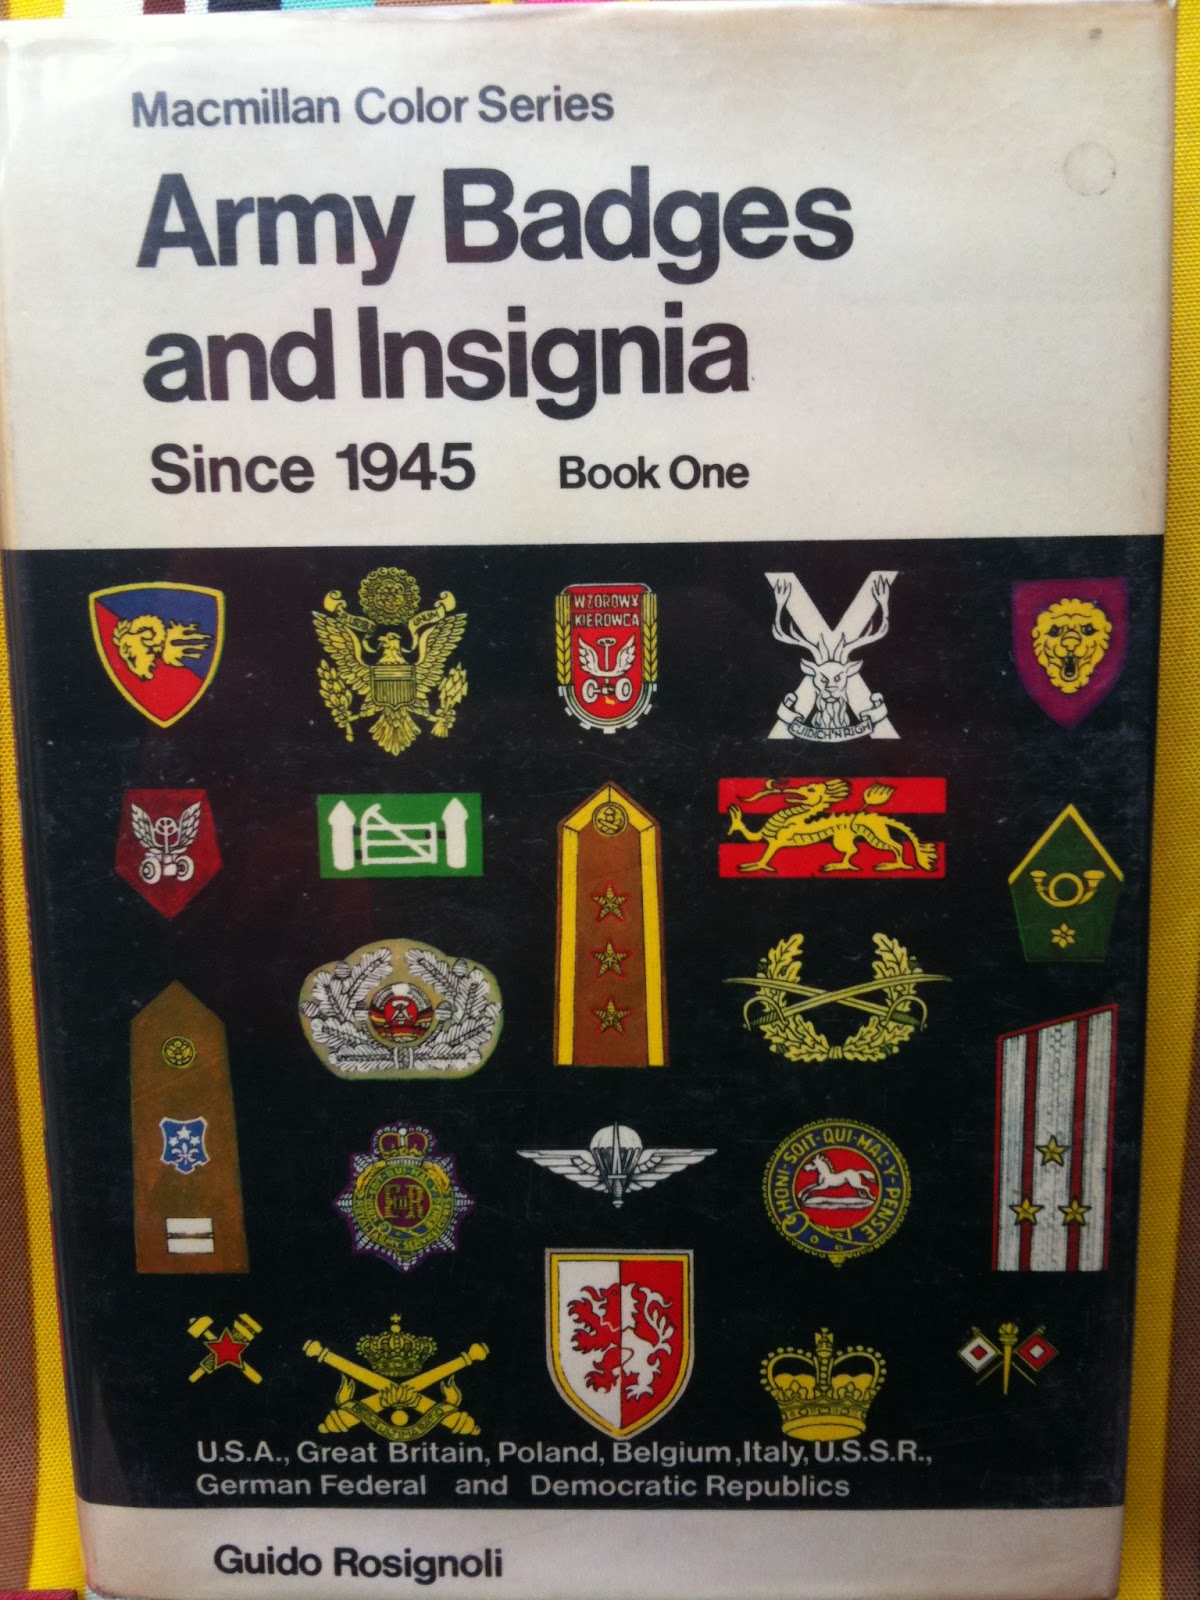 Army Badges and Insignia Since 1945: Book One Guido Rosignoli